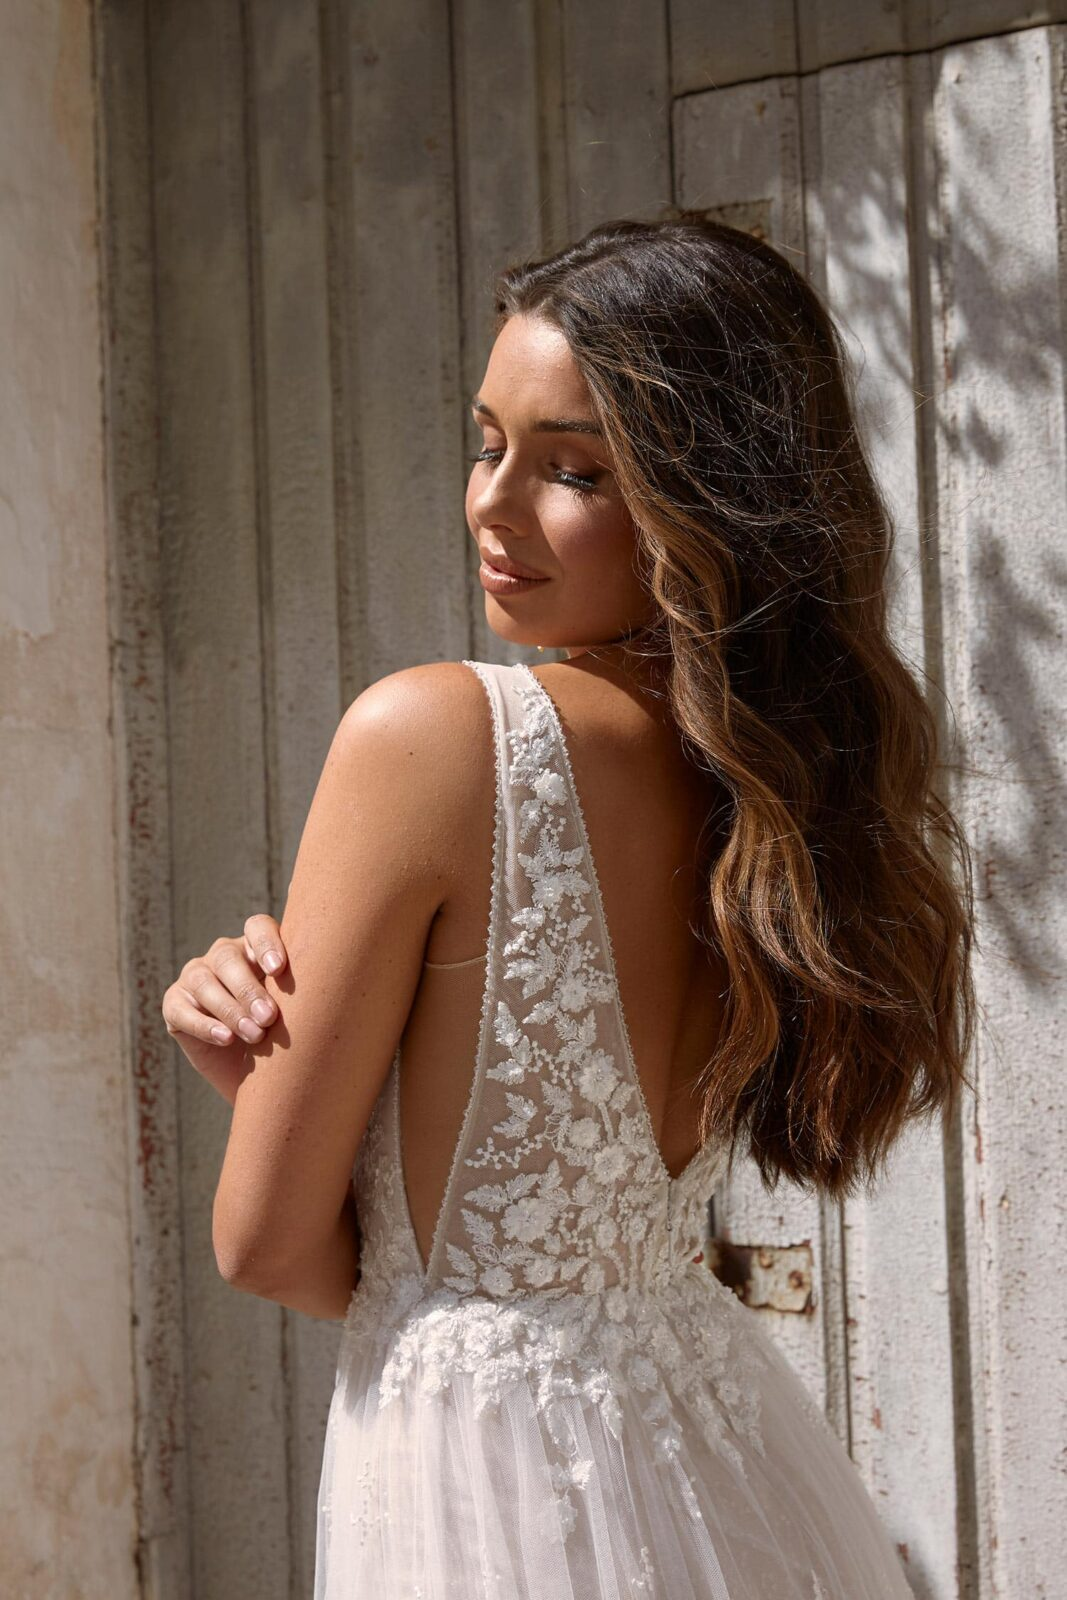 MAISIE-ML11365-FULL-LENGTH-FLORAL-LACE-WITH-PLUNGING-NECK-WEDDING-DRESS-MADI-LANE-BRIDAL5